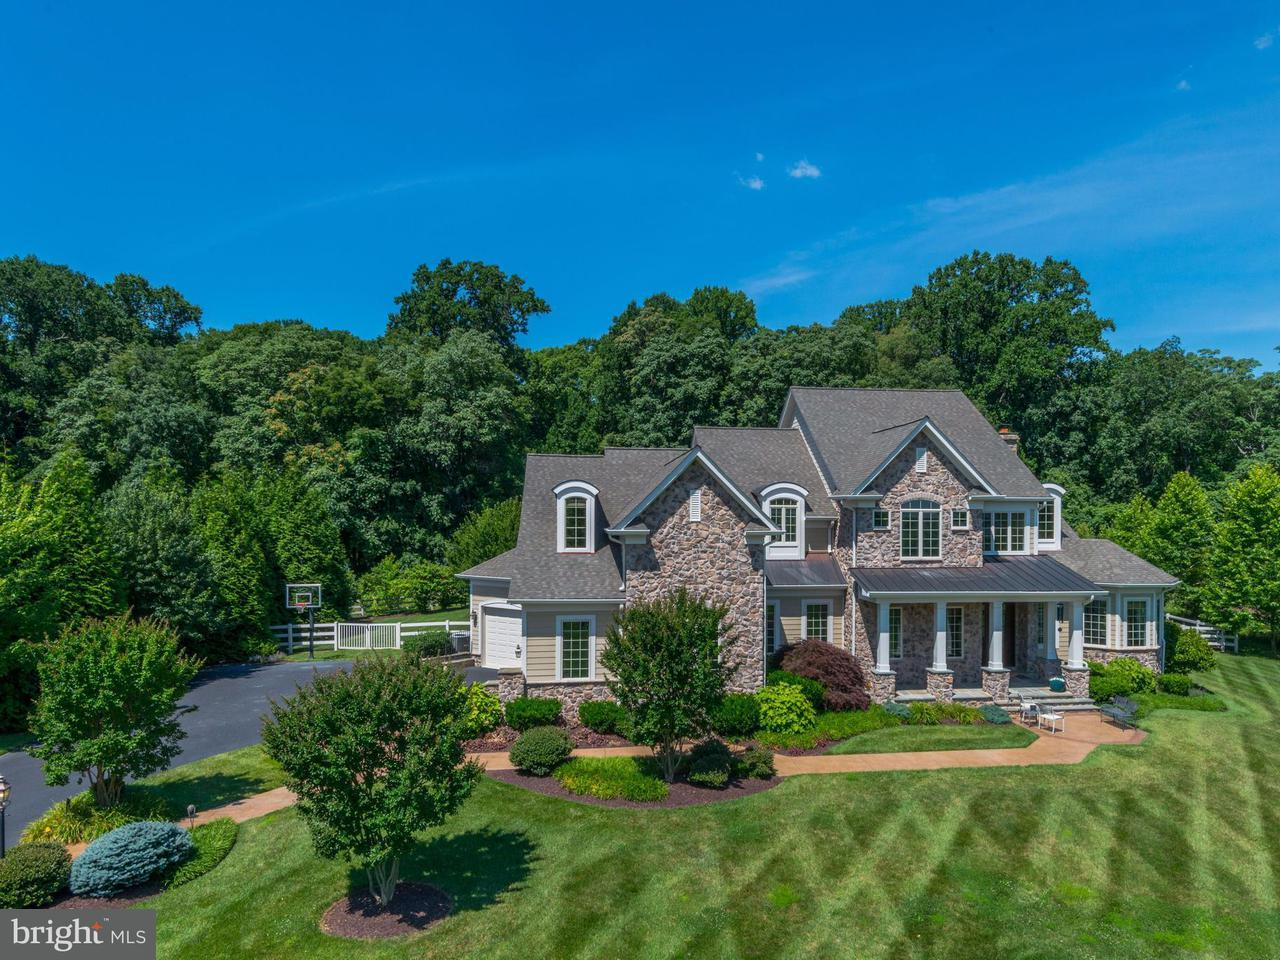 Single Family Home for Sale at 14412 MEADOW MILL WAY 14412 MEADOW MILL WAY Glenwood, Maryland 21738 United States